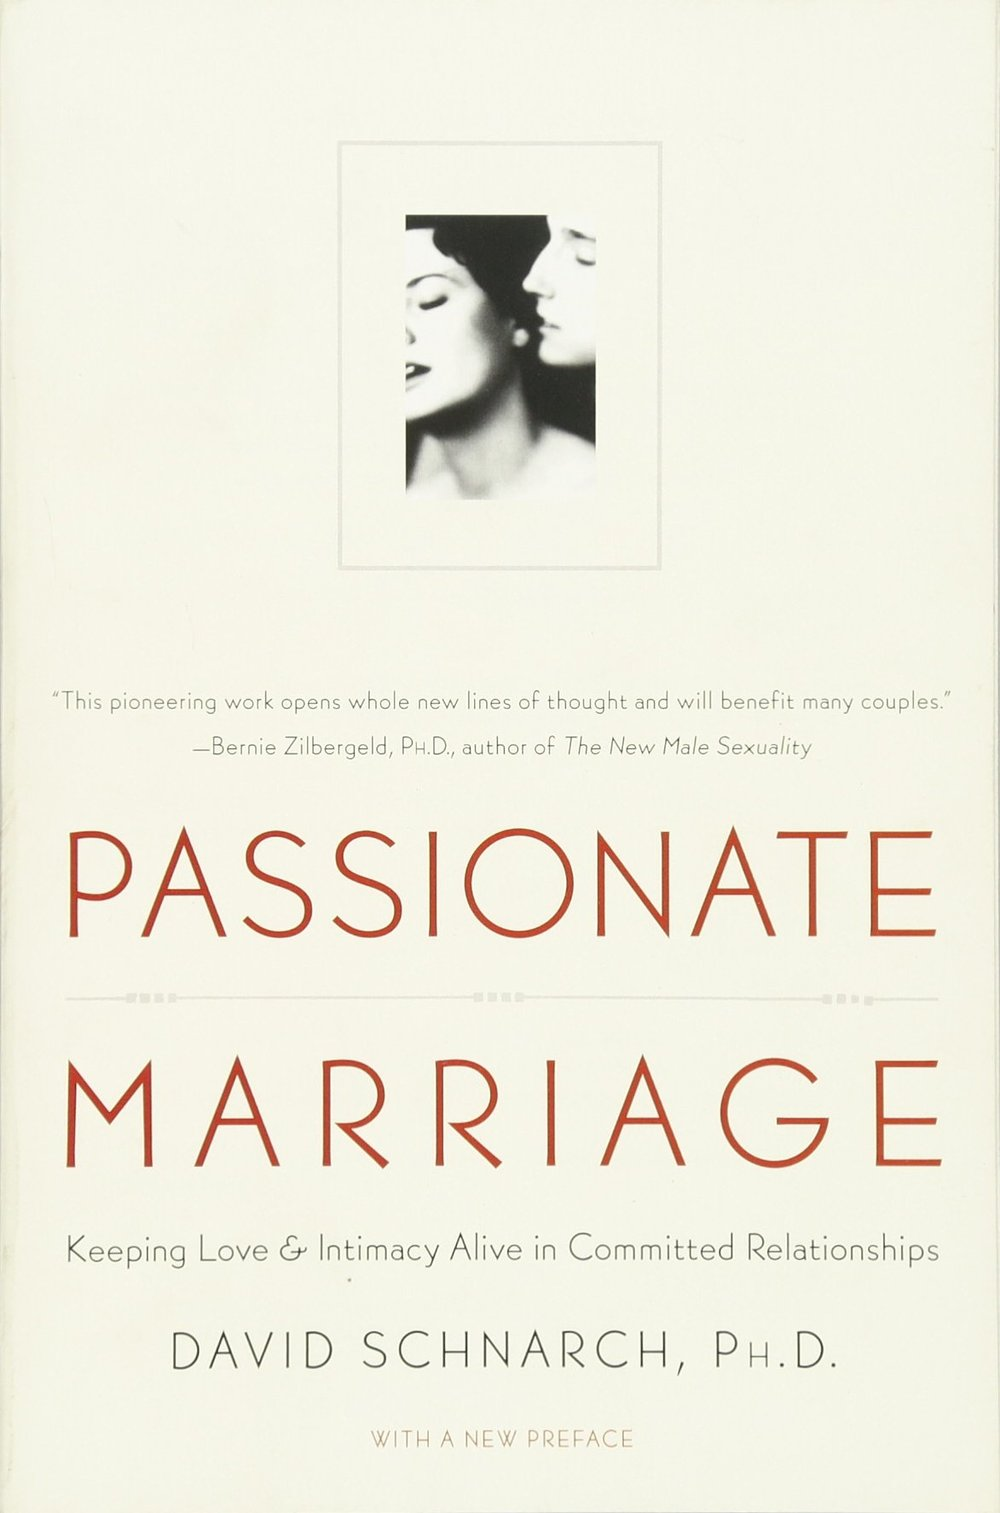 passionate marriage david schnarch.jpg